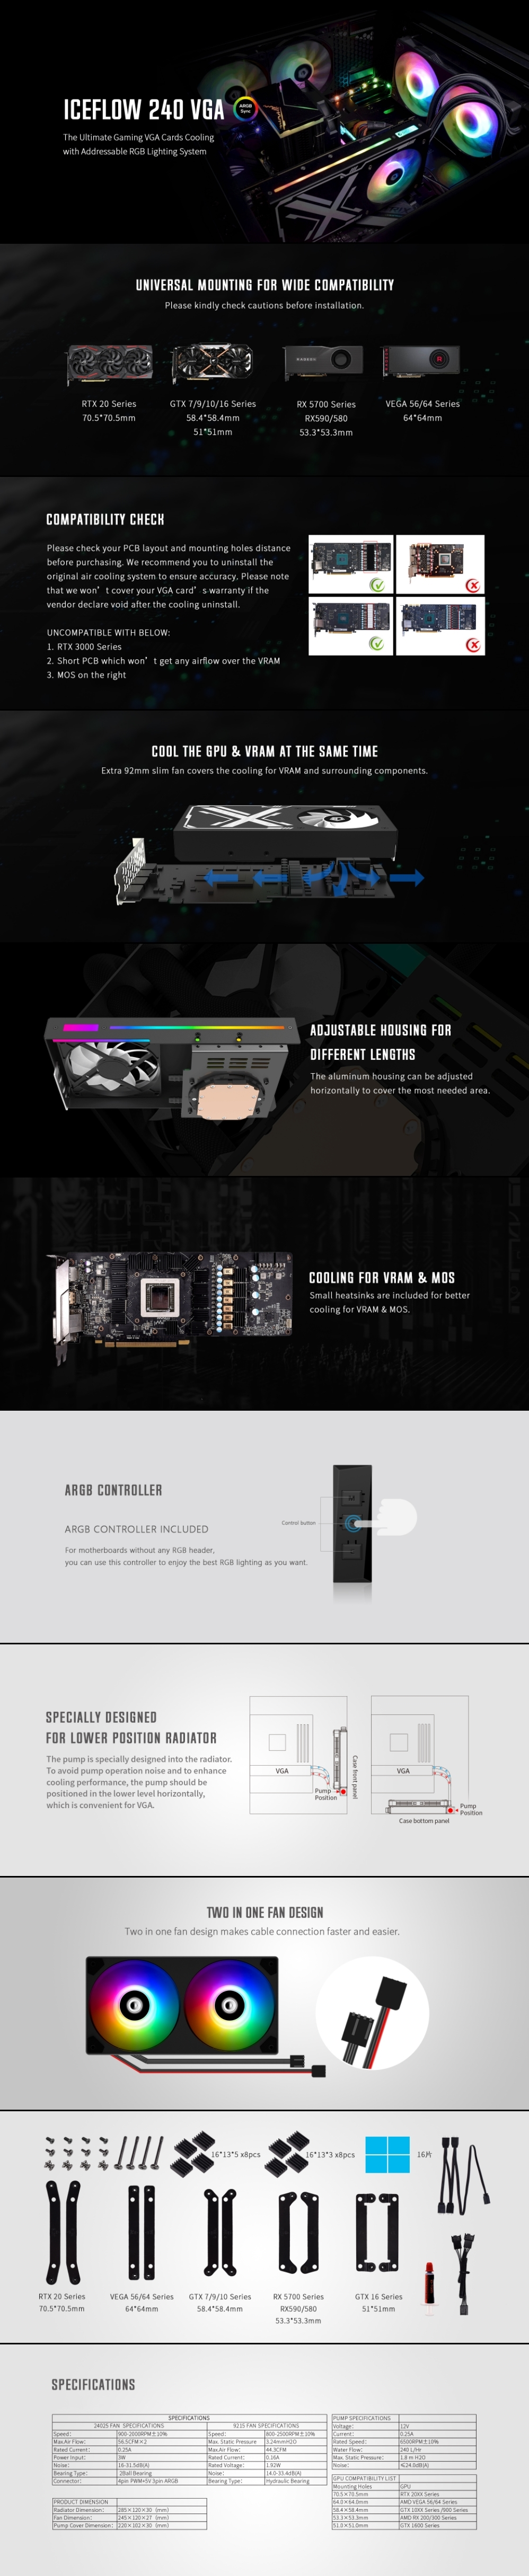 A large marketing image providing additional information about the product ID-COOLING IceFlow 240 AIO VGA Liquid Cooler - Additional alt info not provided